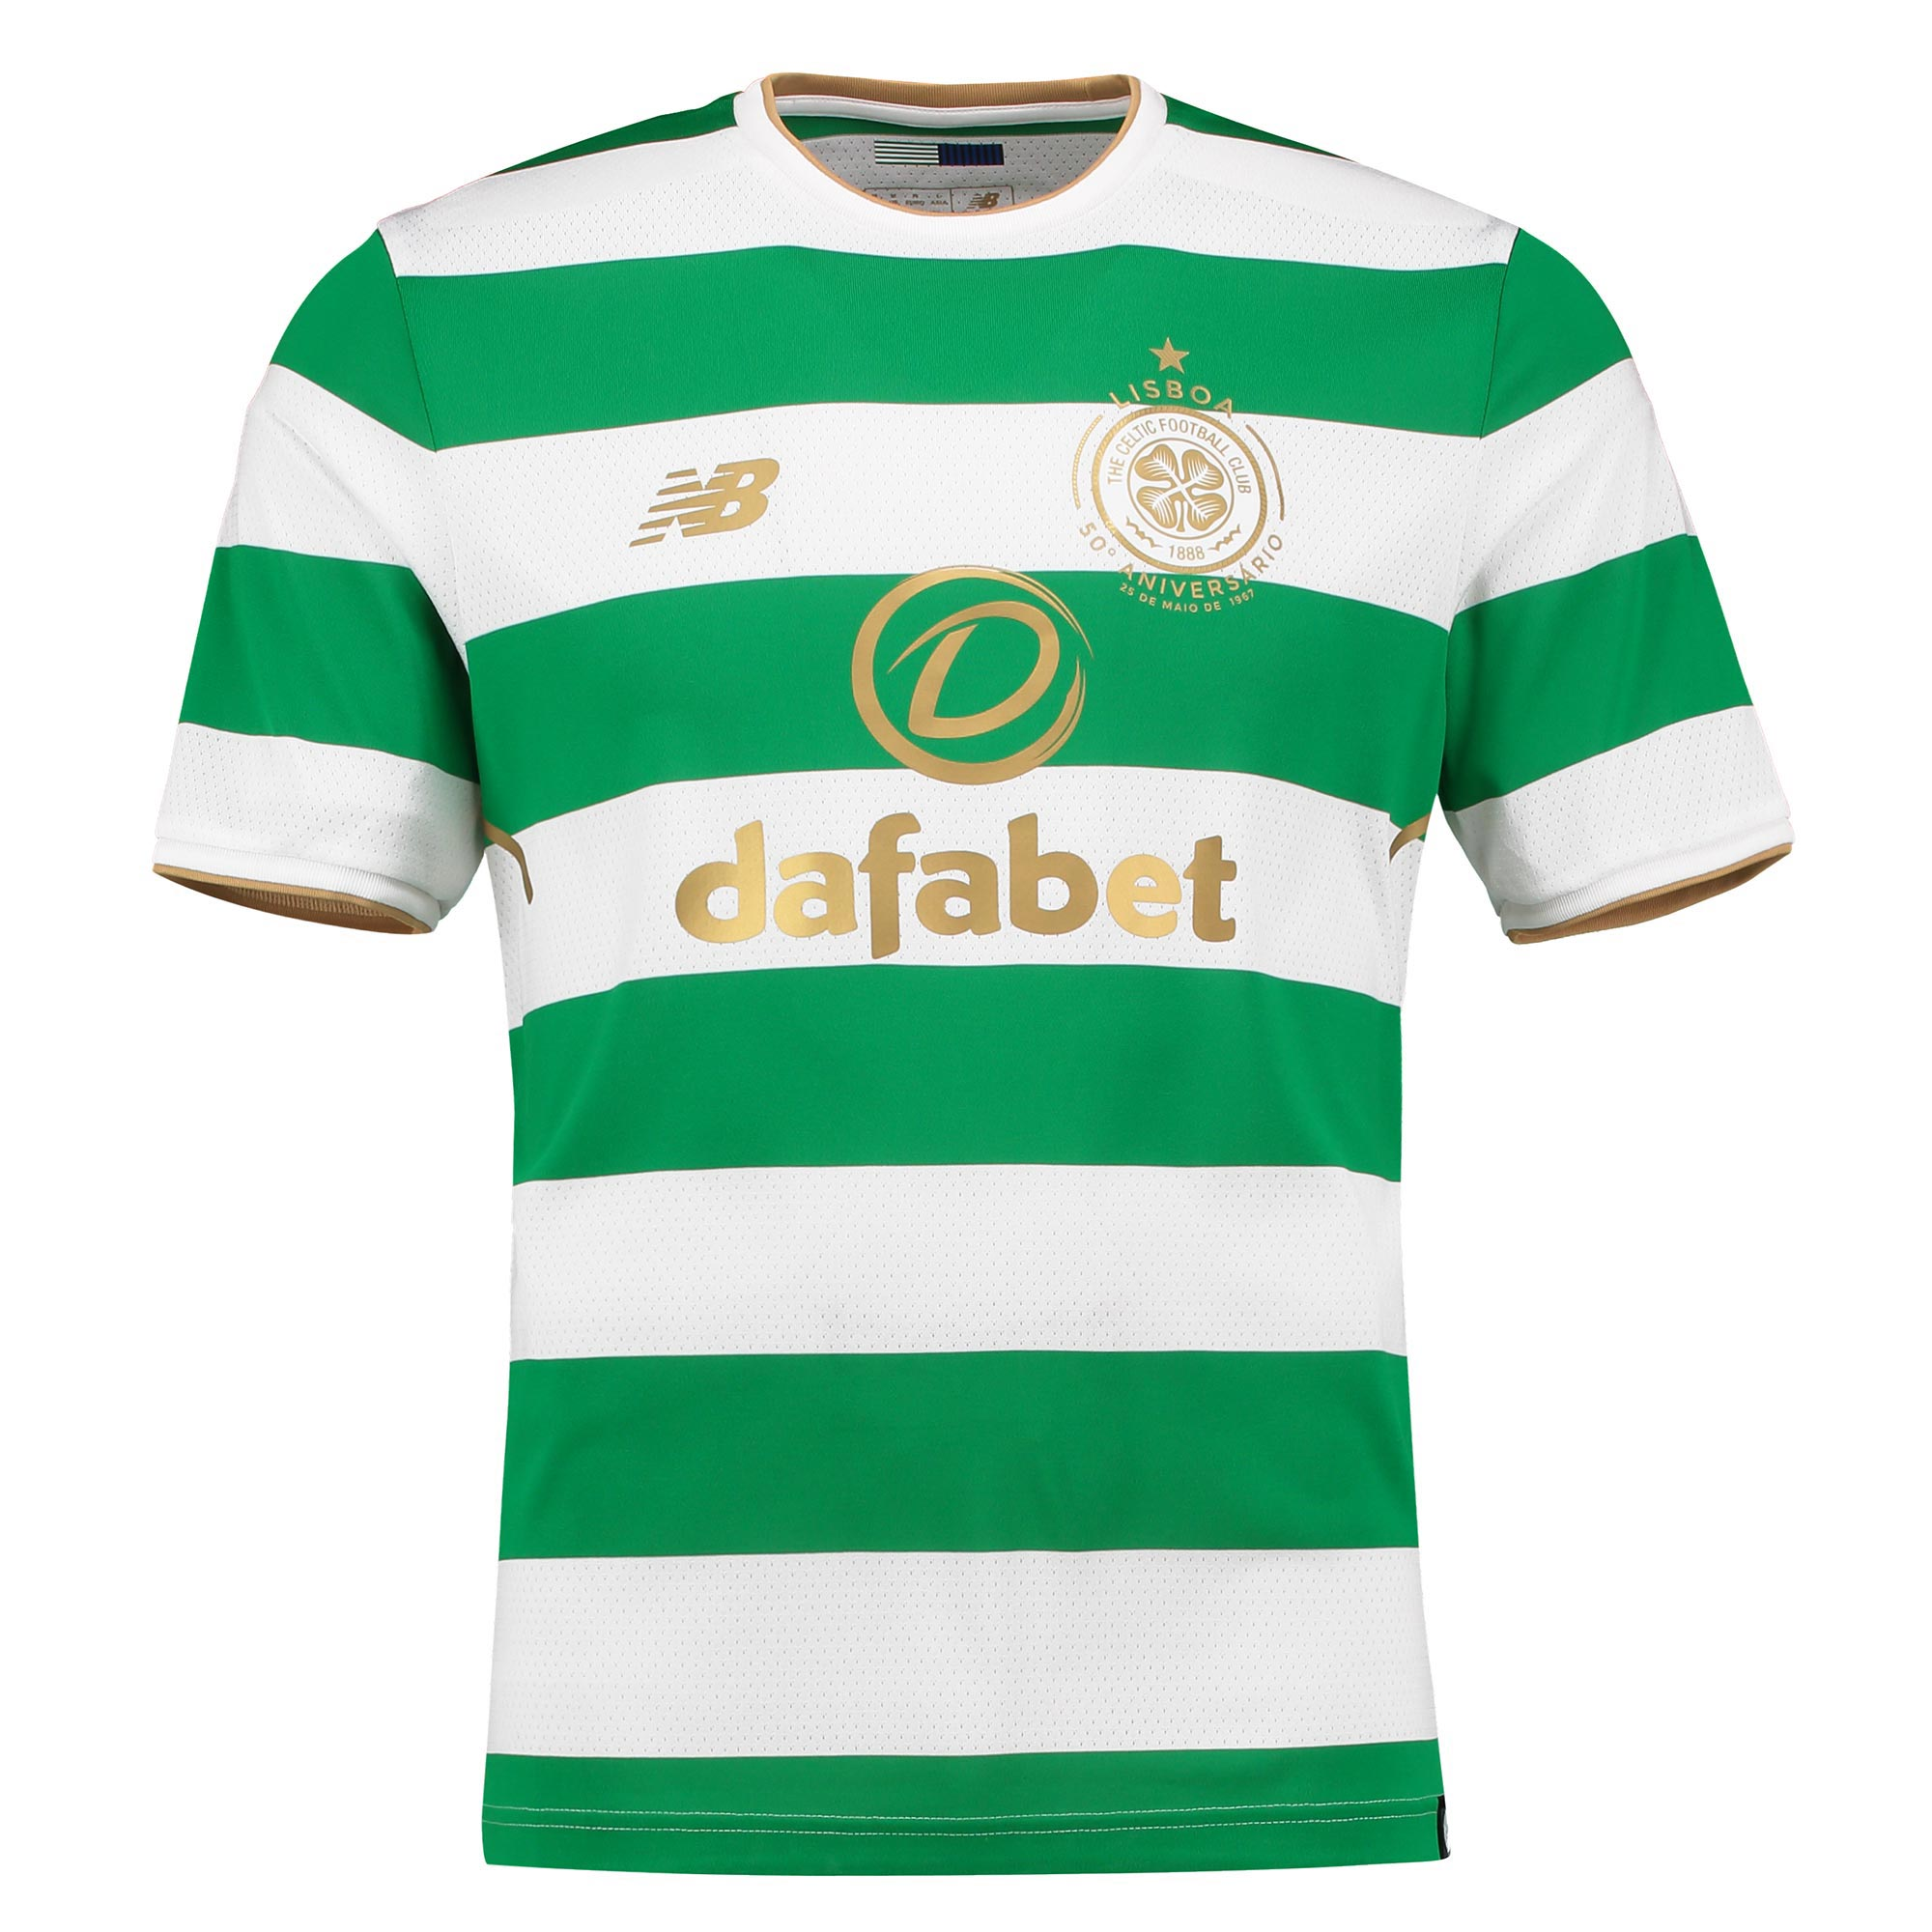 New form of Celtic 2017-2018 year 96